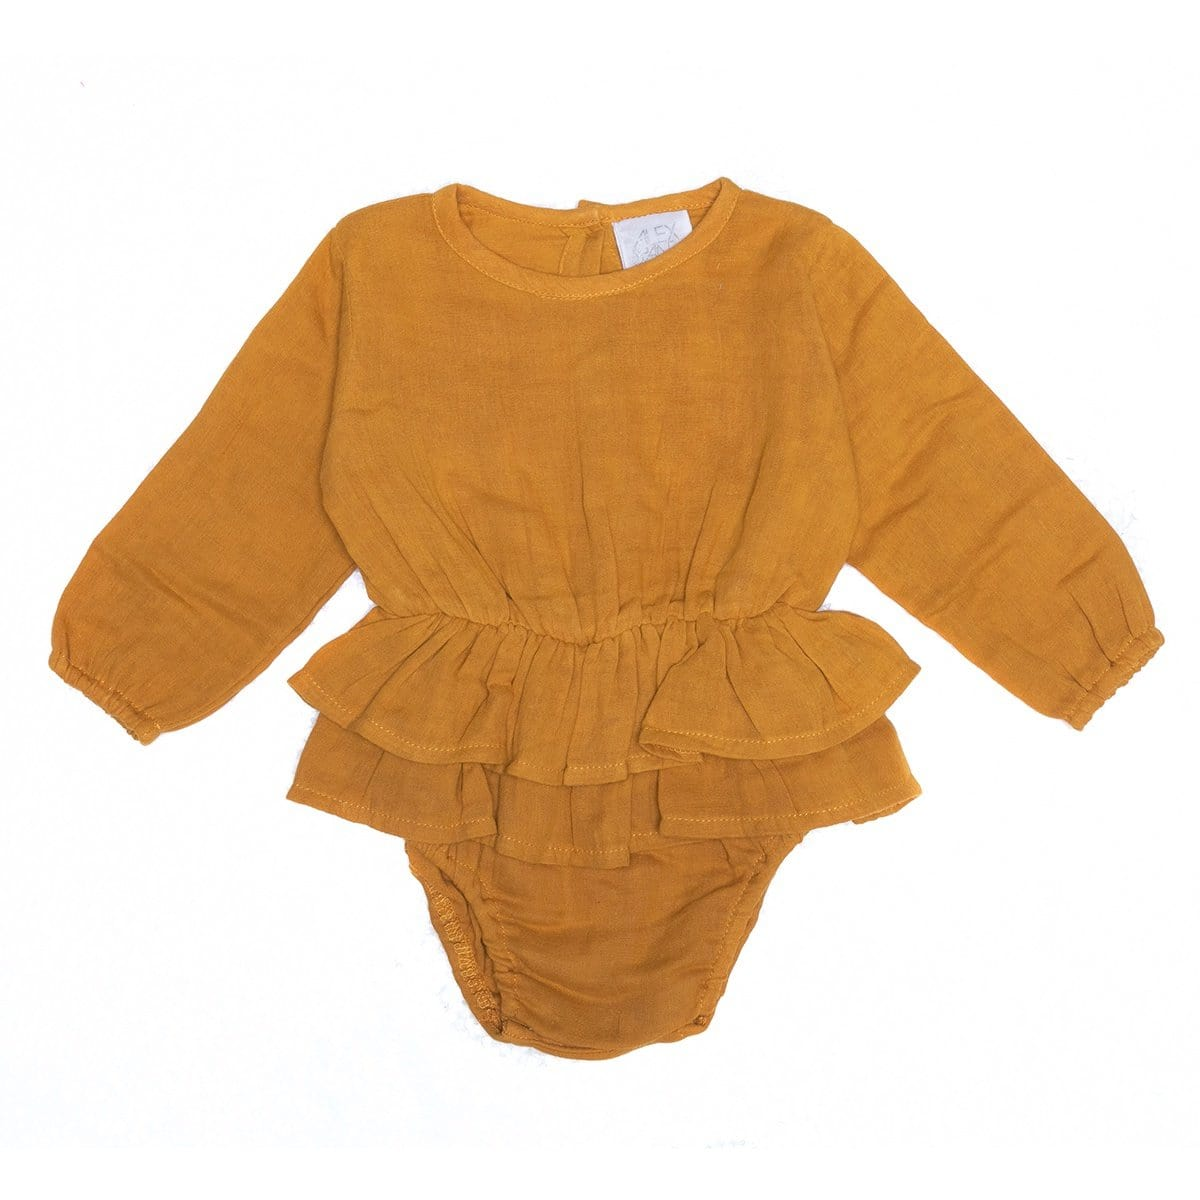 Alex and Ant Gia Playsuit - Biscotti